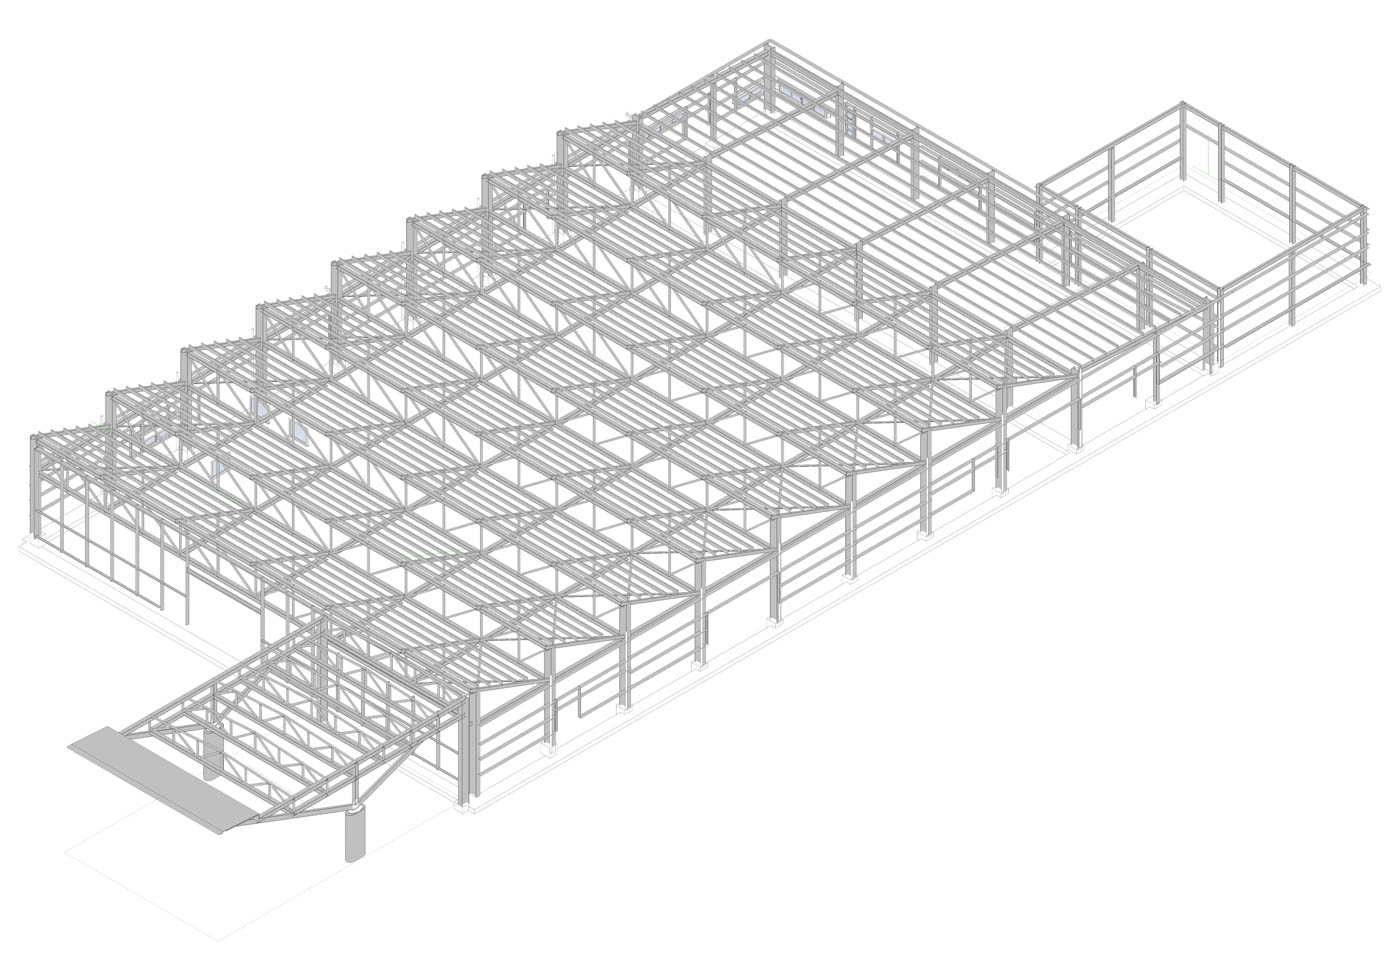 Structural Model for the Transfer Baggage Facility in AIA / 2018 / Arch. Design by EB/Architects